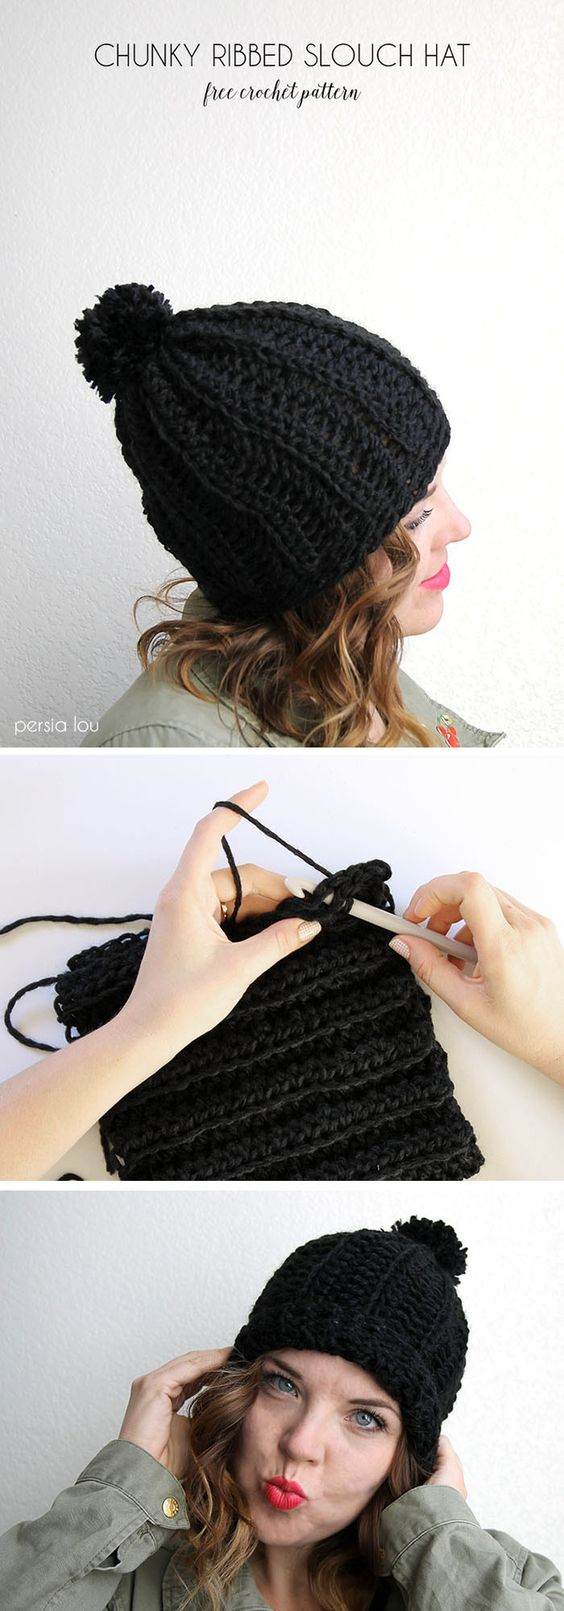 Slouch hats, Free crochet and Crochet patterns on Pinterest